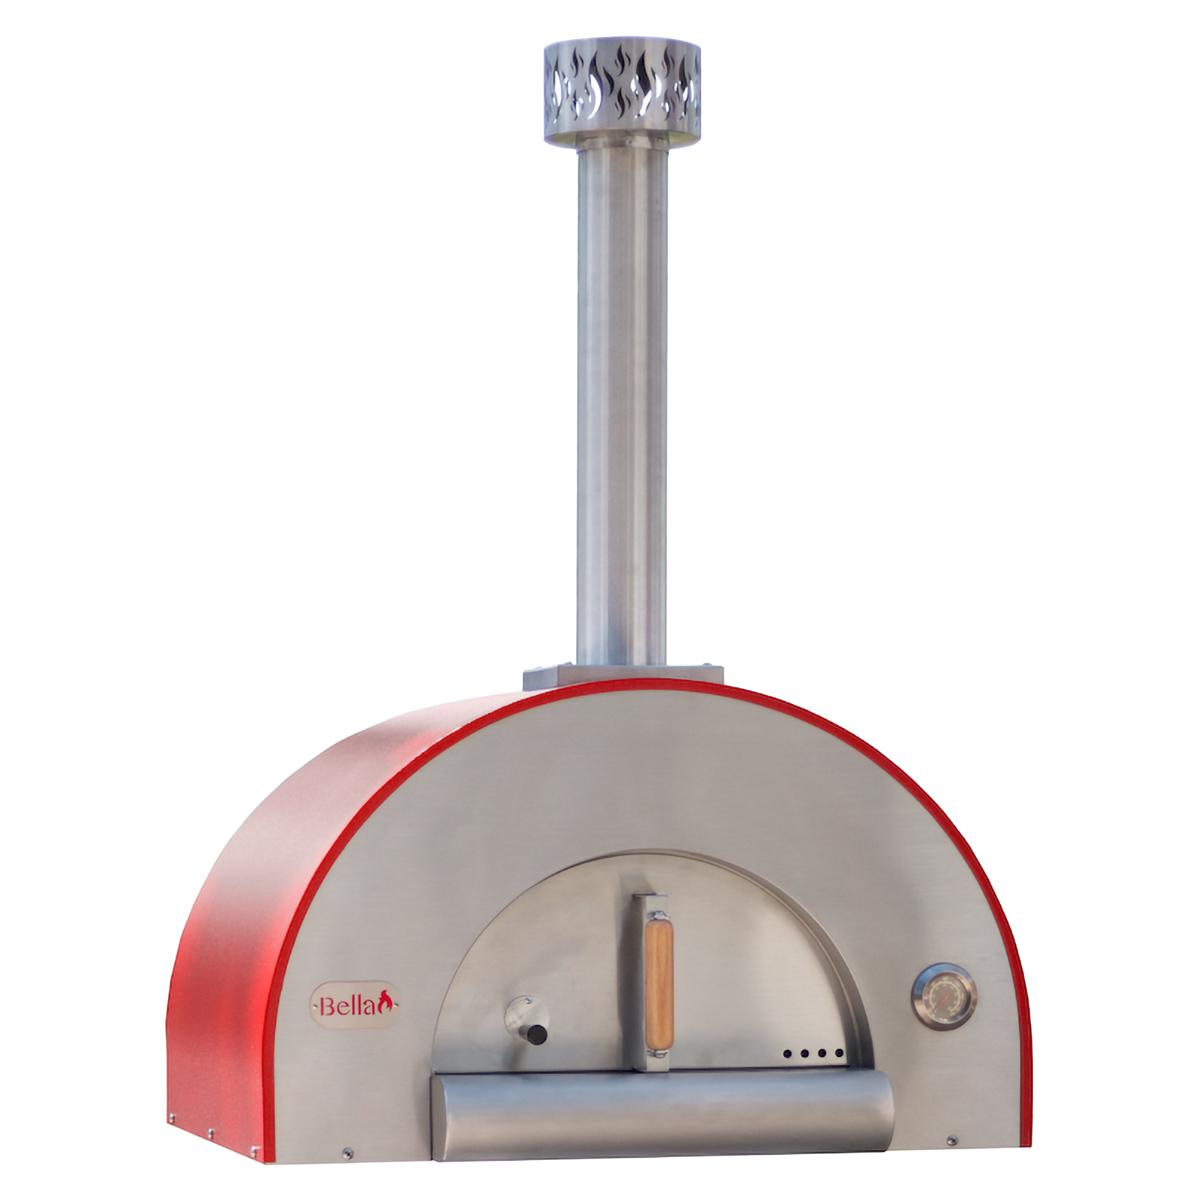 """Bella Outdoor Living Bella Medio 28"""" Outdoor Wood Fired Pizza Oven - Red - Bemd28r"""